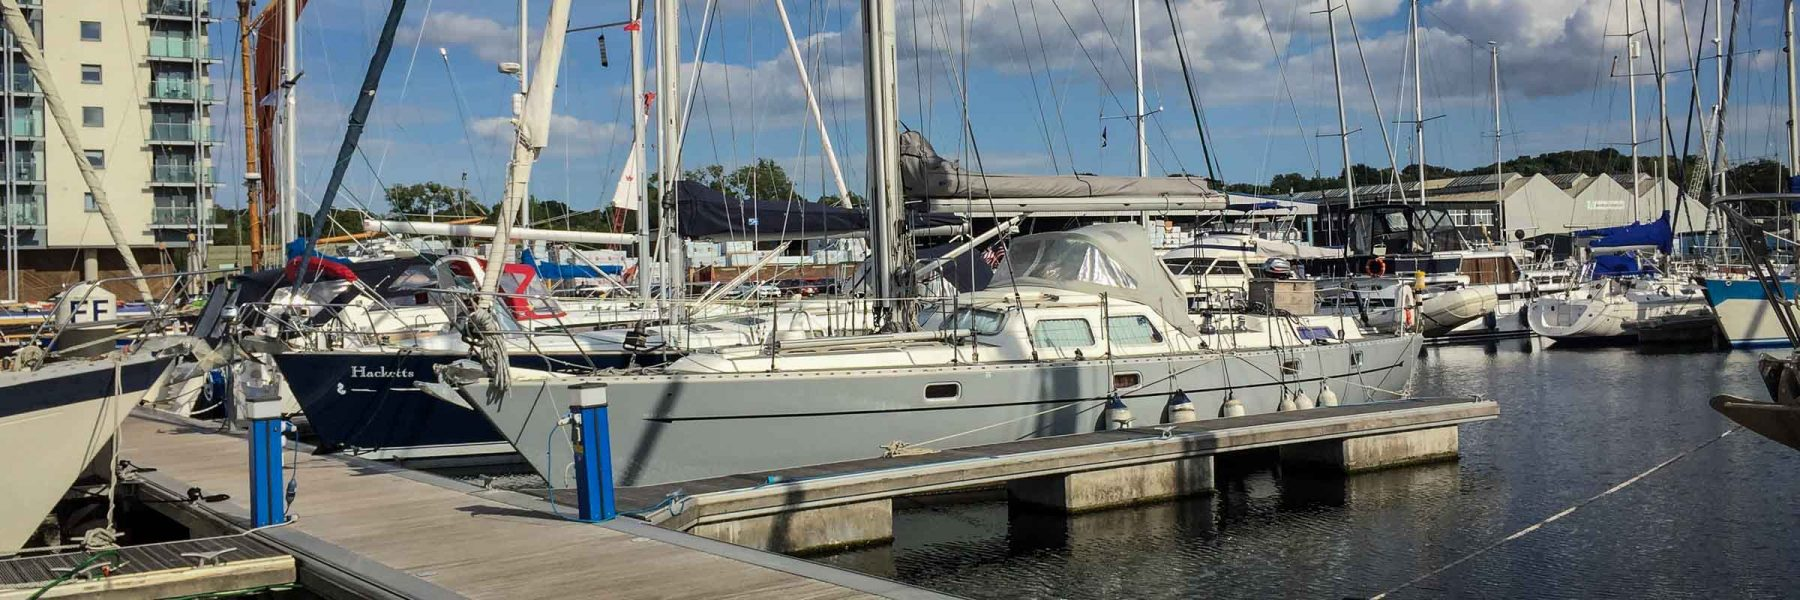 Oyster 435 yacht in Ipswich marina